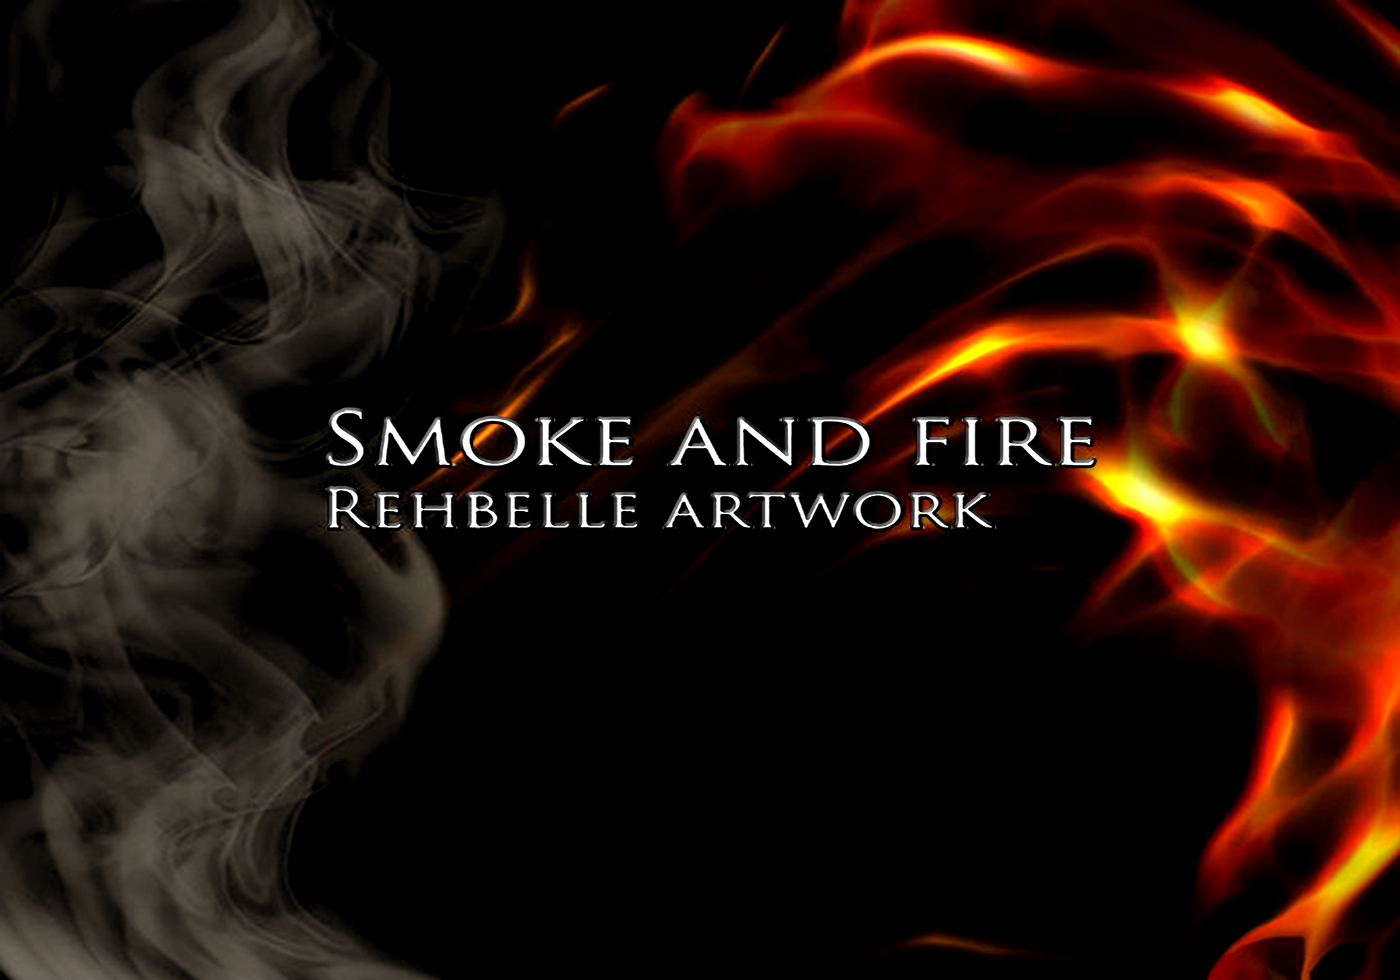 Smoke and Fire -Rehbelle - Free Photoshop Brushes at Brusheezy!